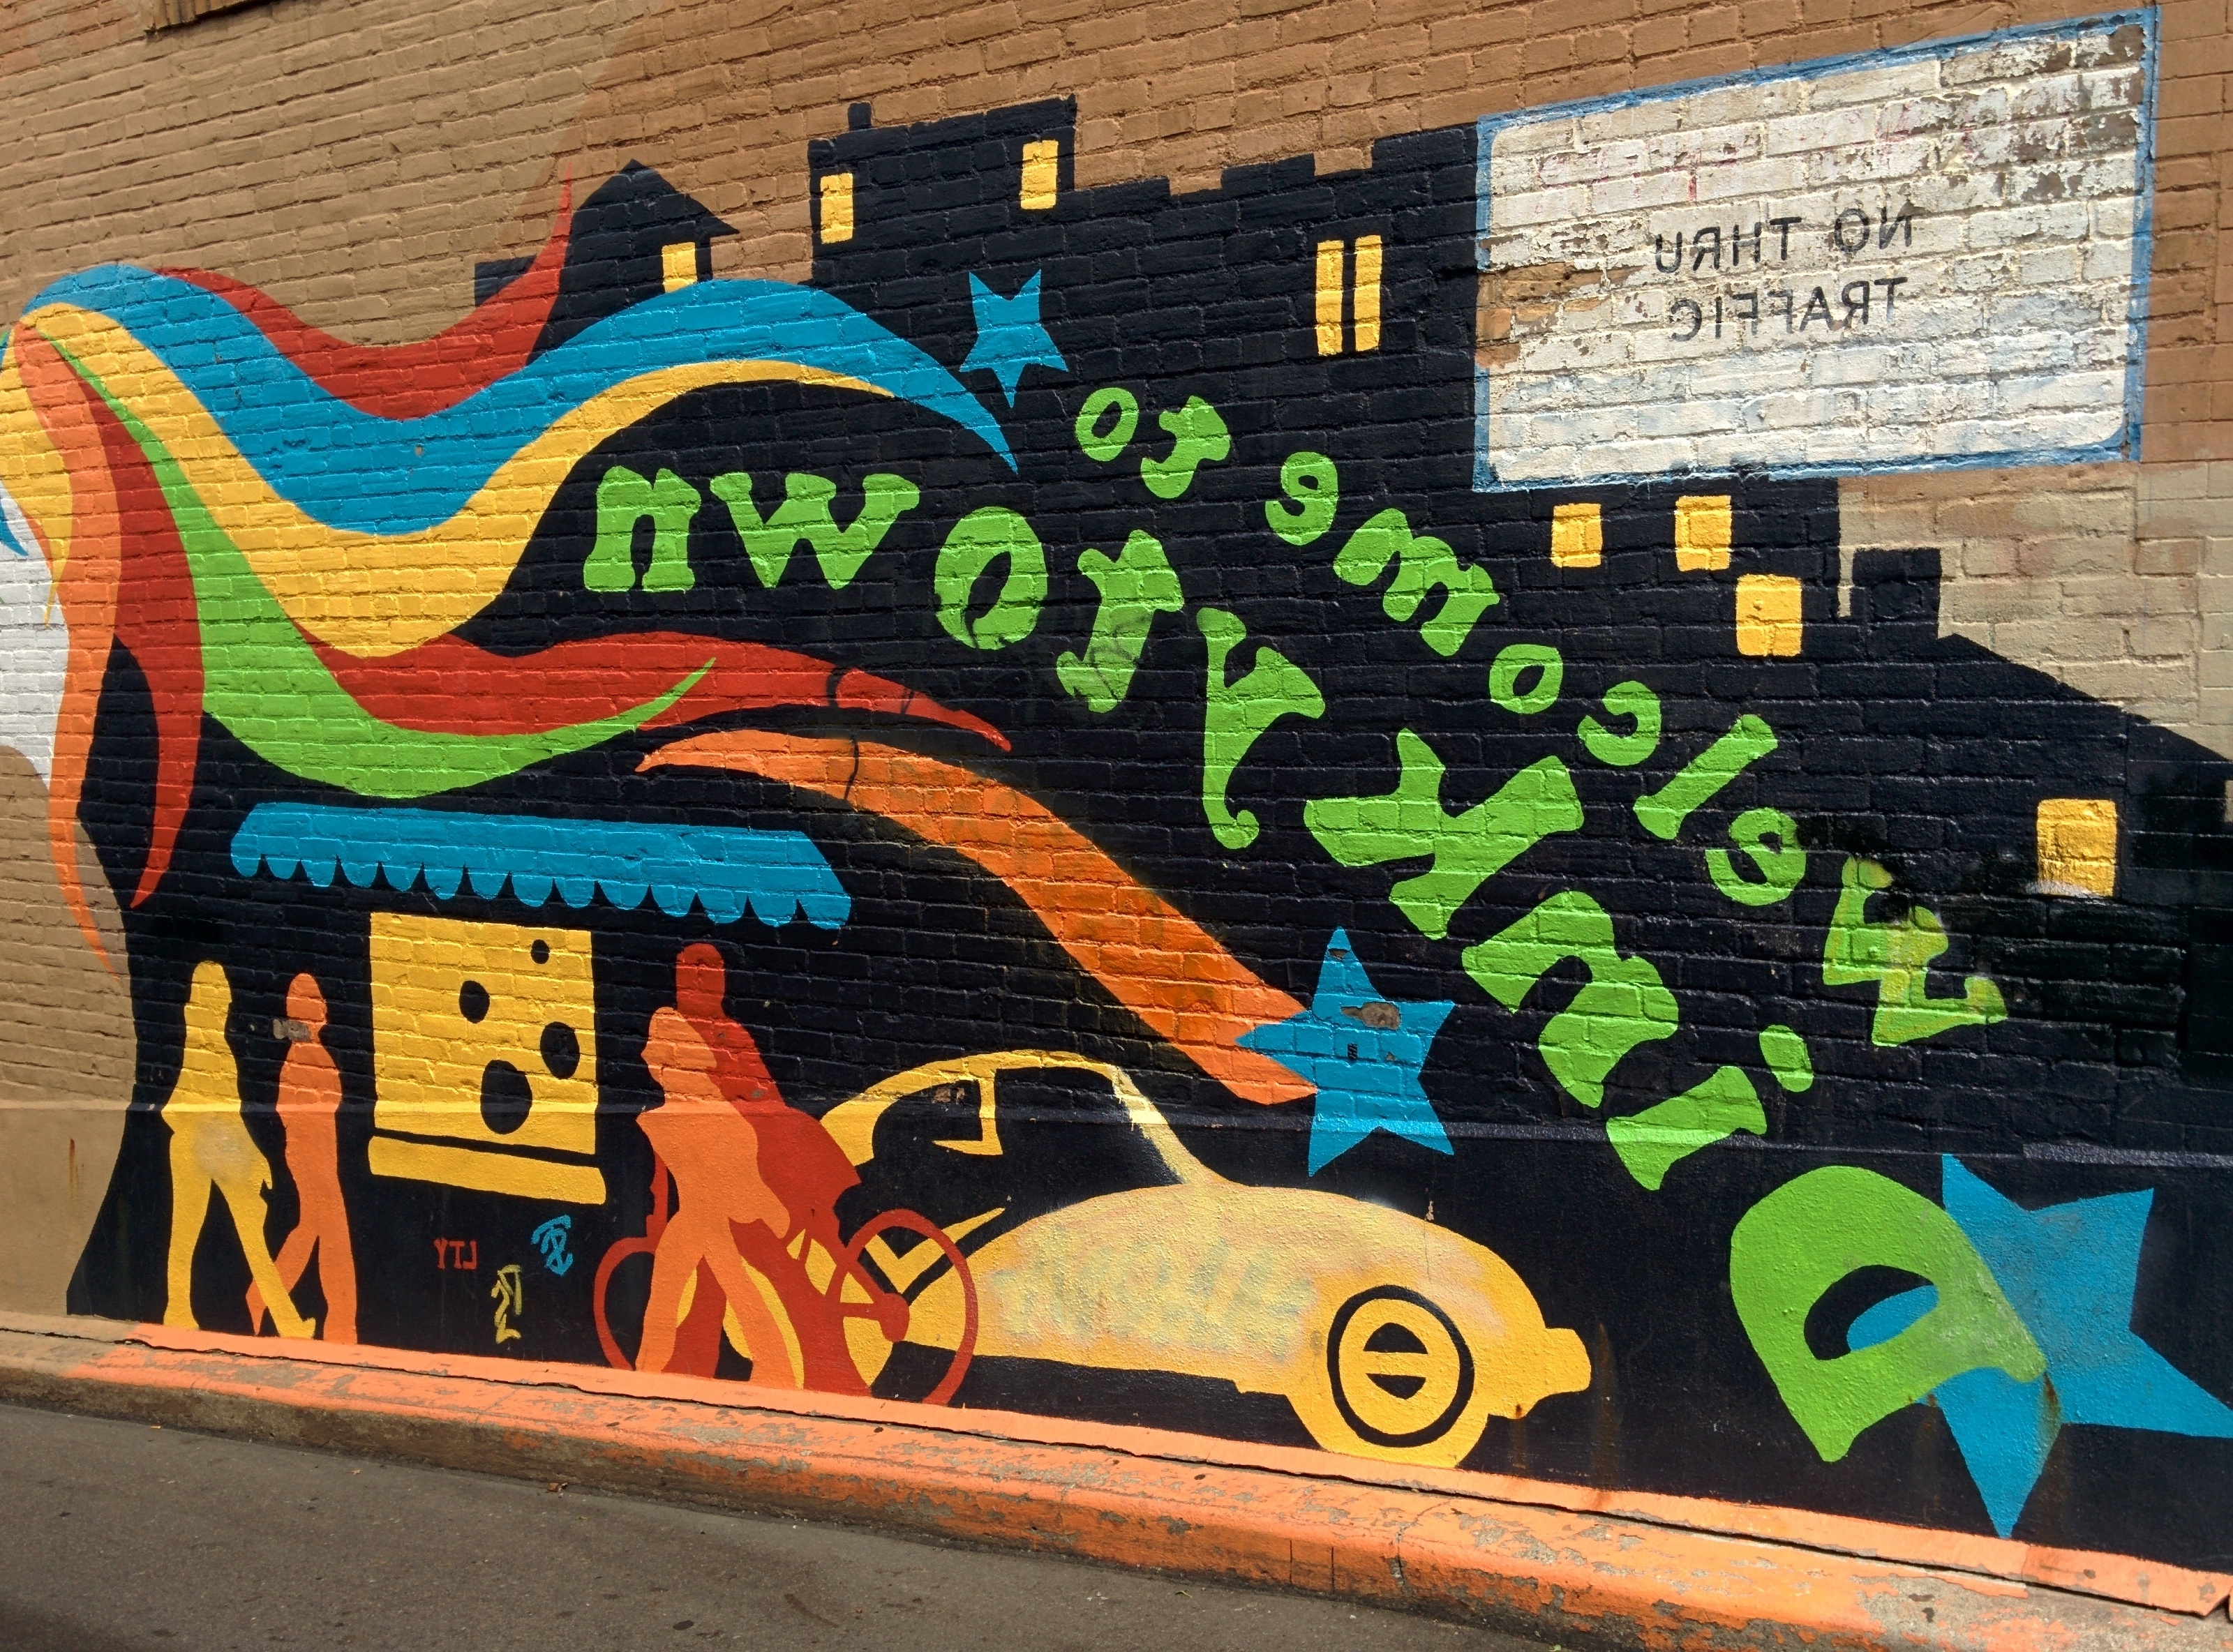 Free Images : Wall, Color, Graffiti, Street Art, Illustration Regarding Best And Newest Minneapolis Wall Art (View 3 of 15)